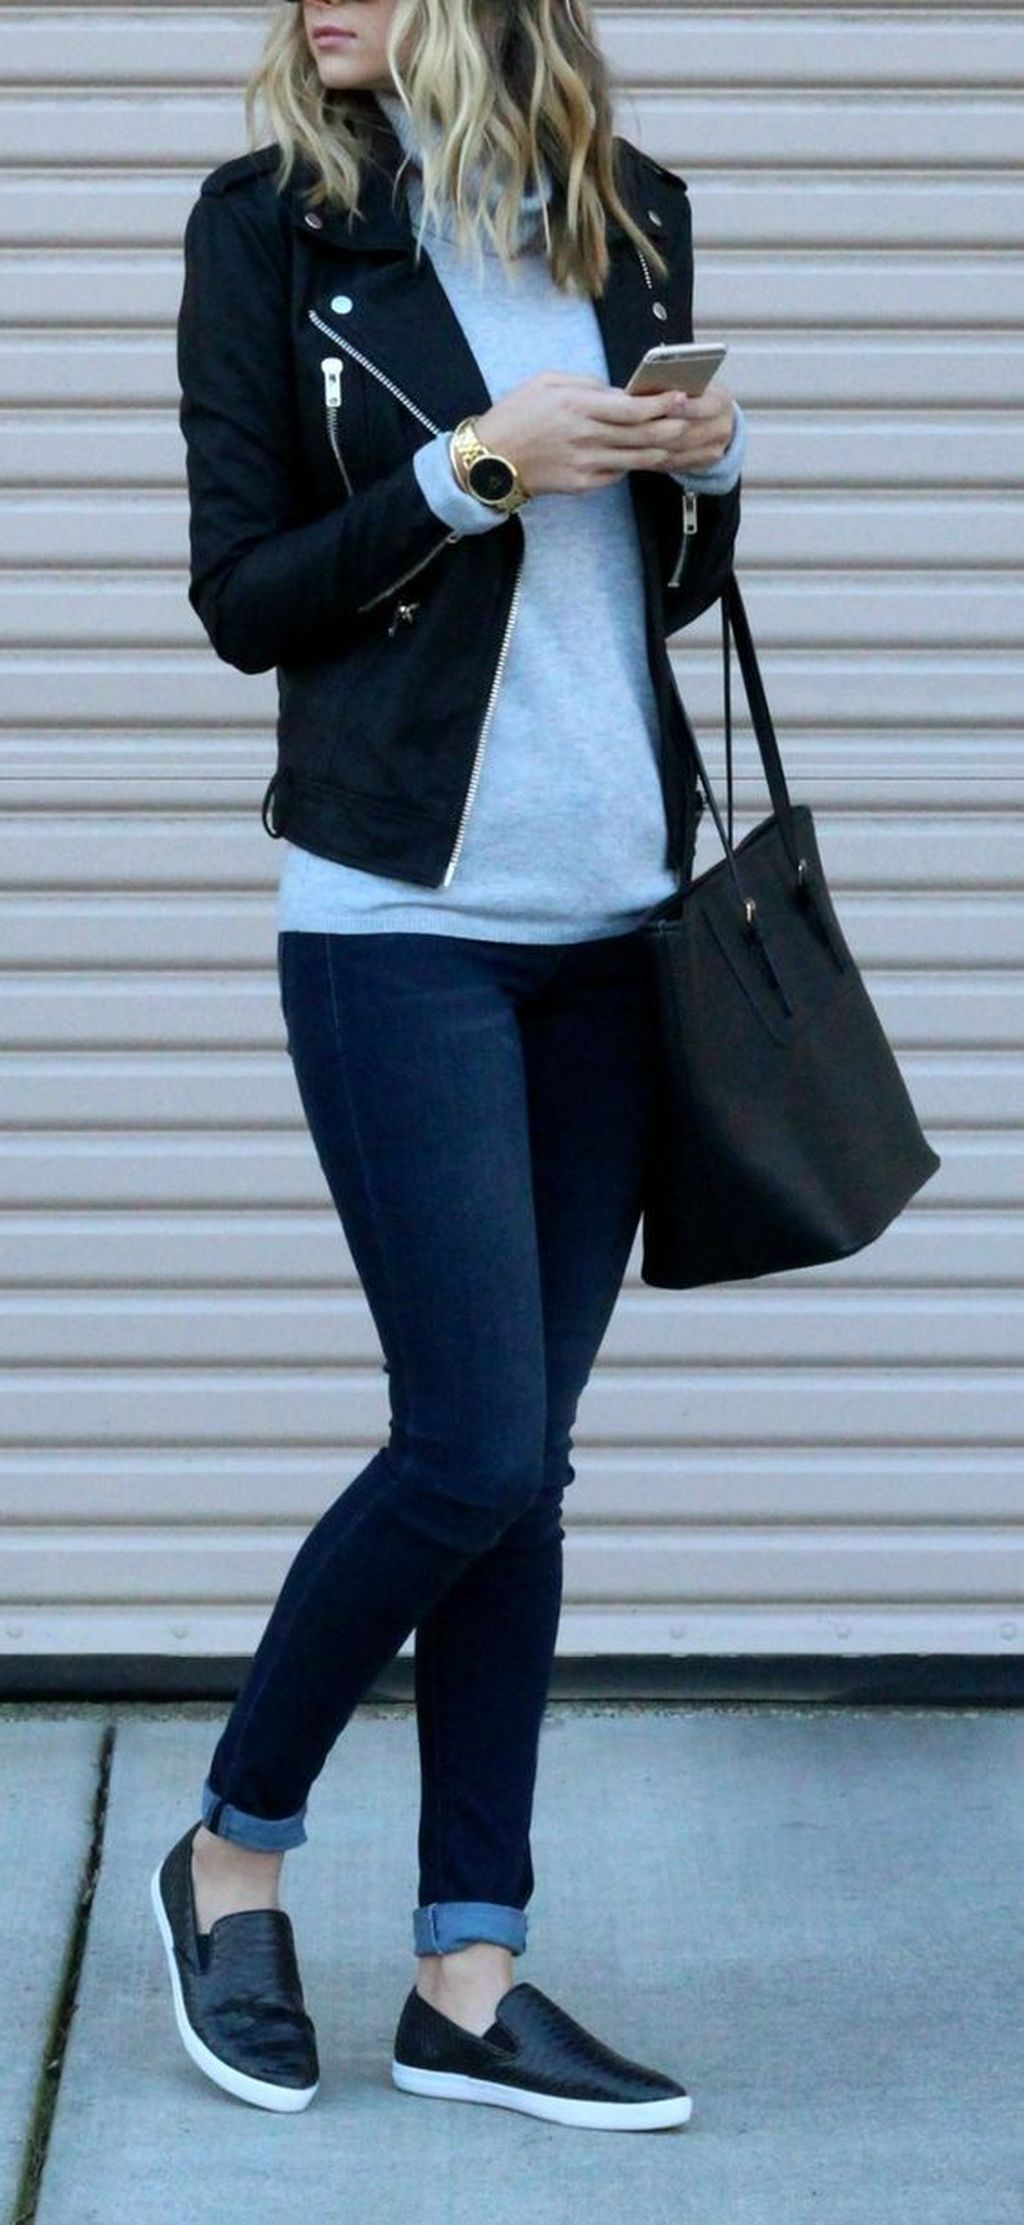 99 Classy And Casual Women Winter Leather Jacket Outfits Ideas OutfitsAutumn 2017 CasualModest Summer